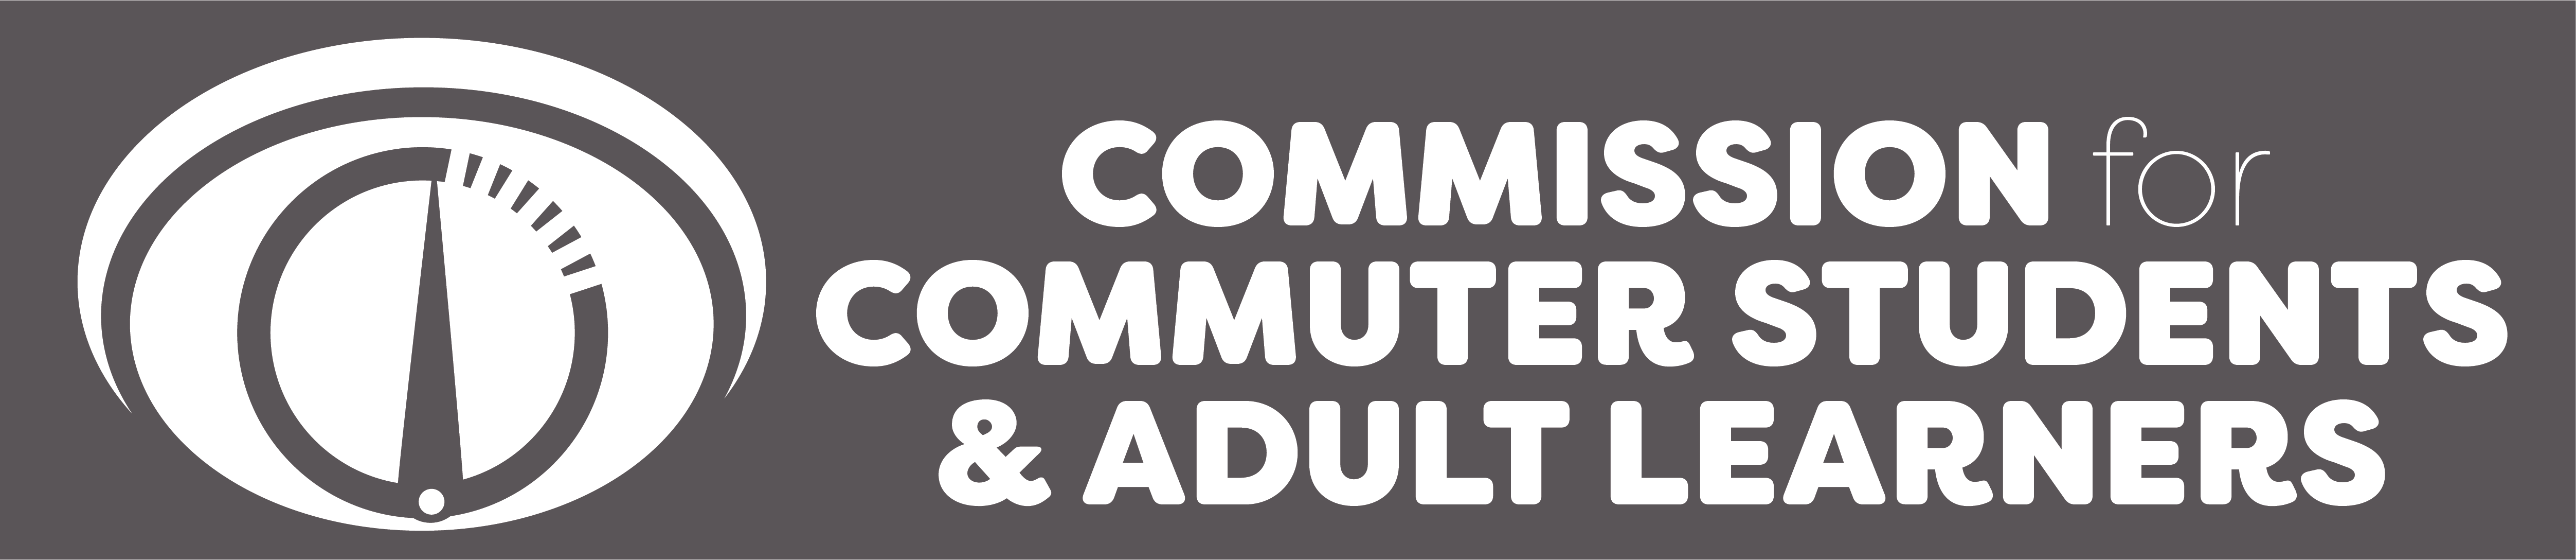 Commission for Commuter Students & Adult Learners